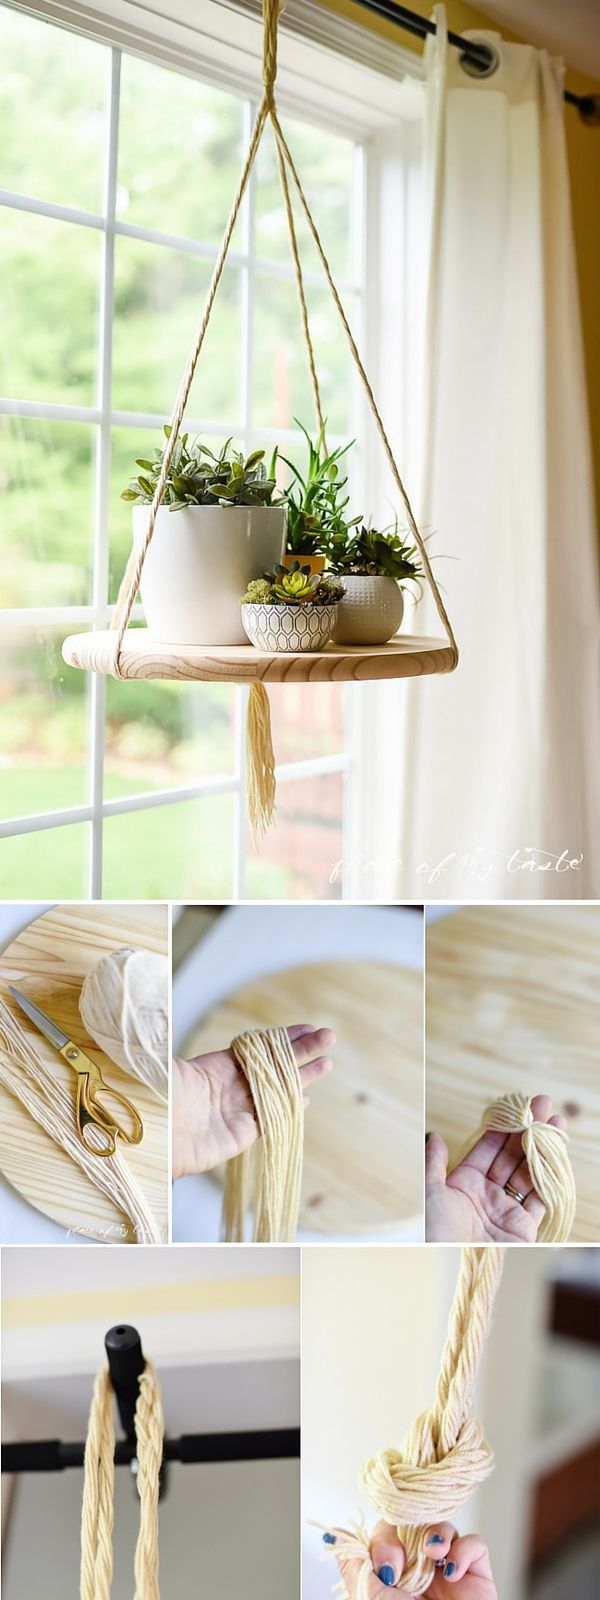 We have curated a list of 15 cool DIY #home decor ideas that can ...